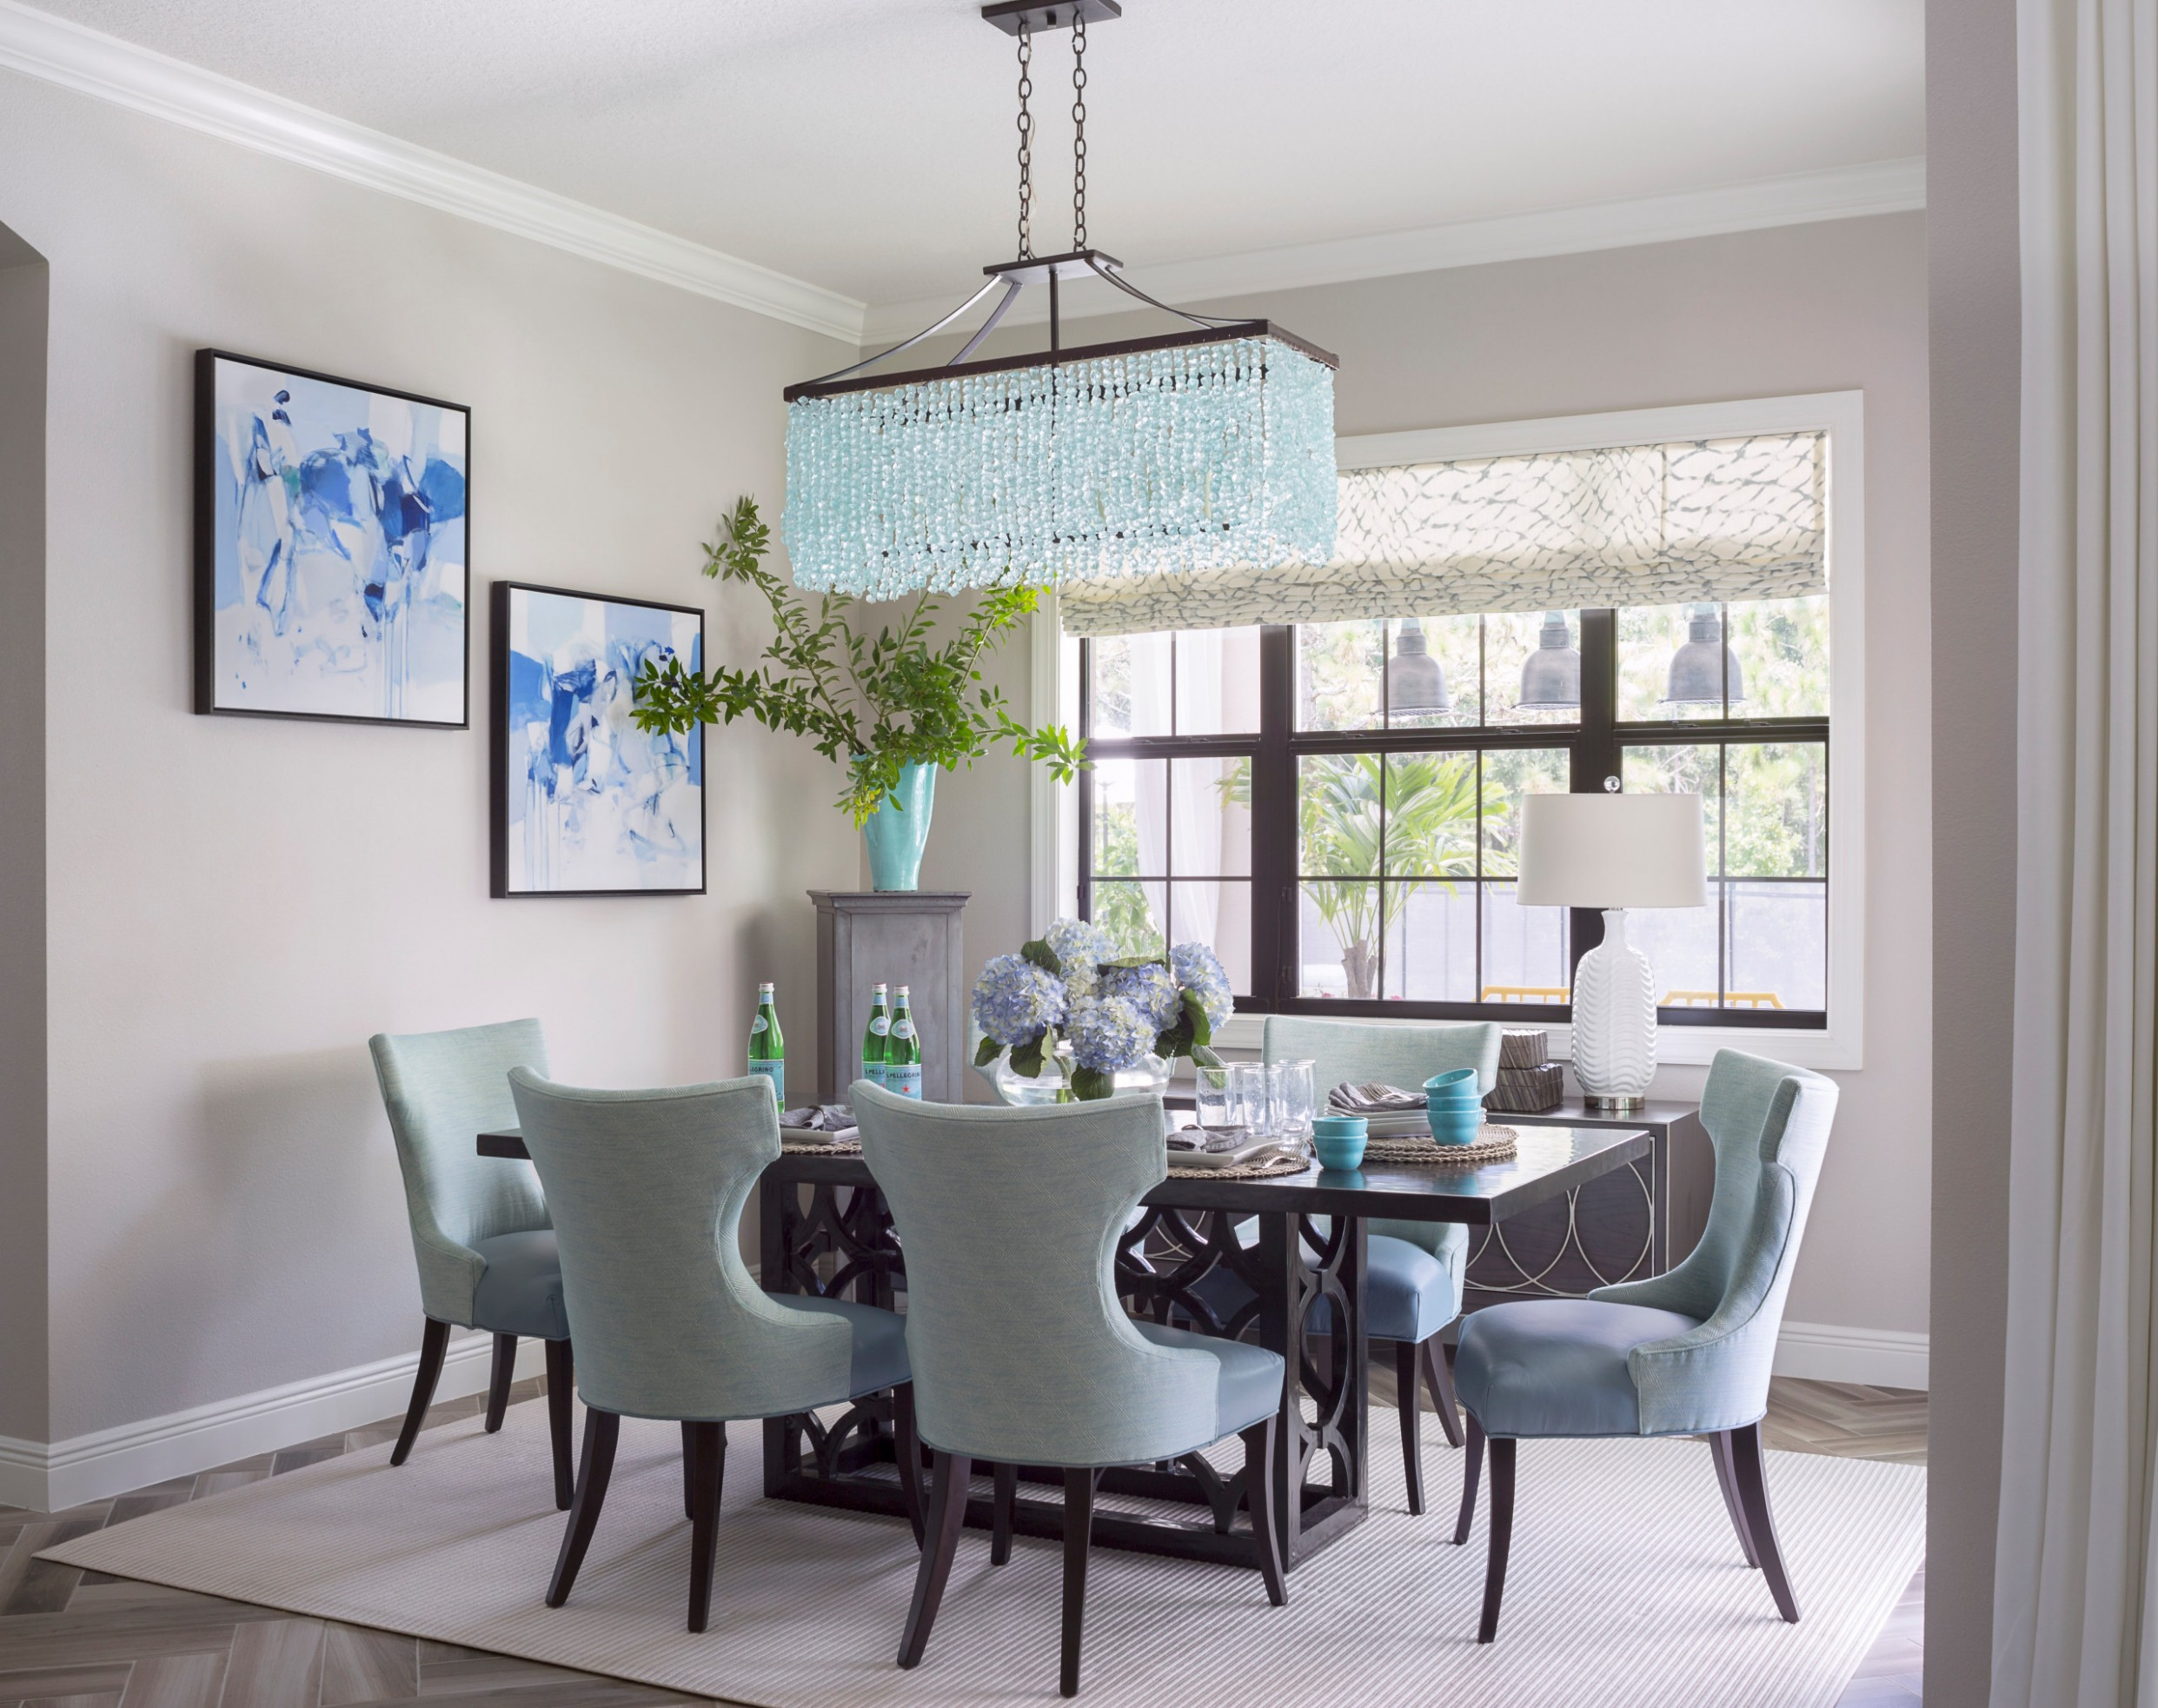 9 Beautiful Dining Room Pictures & Ideas - October, 9  Houzz - Small Dining Room Ideas Houzz